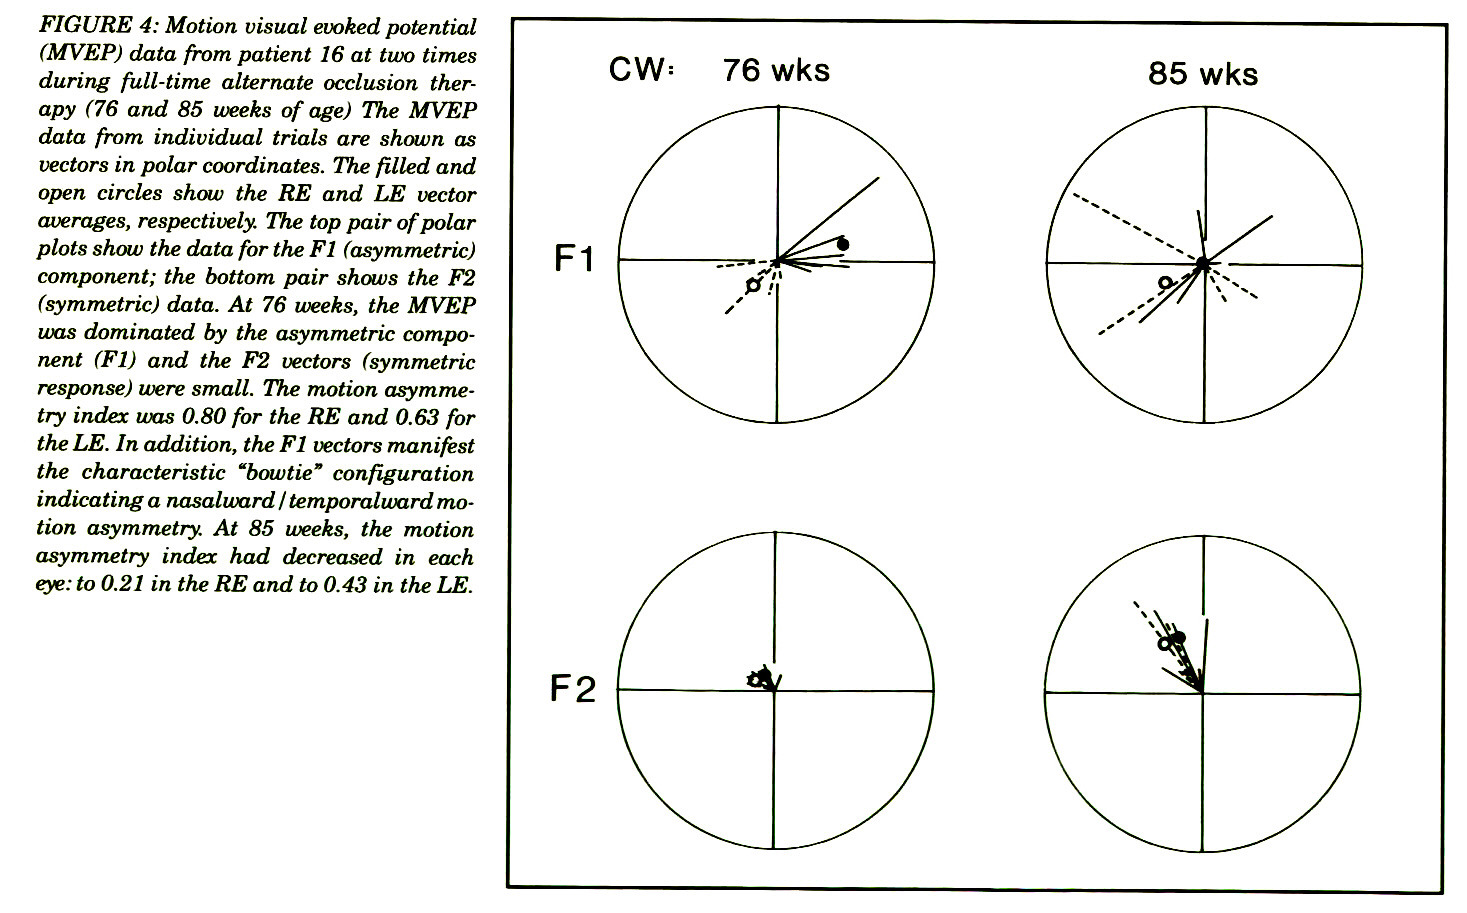 "FIGURE 4: Motion visual evoked potential (MVEP) data from patient 16 at two times during full-time alternate occlusion therapy (76 and 85 weeks of age) The MVEP data from individual trials are shown as vectors in polar coordinates. The filled and open circles show the RE and LE vector averages, respectively. The top pair of polar plots show the data for the Fl (asymmetric) component; the bottom pair shows the F2 (symmetric) data. At 76 weeks, the MVEP was dominated by the asymmetric component (Fl) and the F2 vectors (symmetric response) were small. The motion asymmetry index was 0.80 for the RE and 0.63 for the LE. In addition, the Fl vectors manifest the characteristic ""bowtie"" configuration indicating a nasalward I temporalward motion asymmetry. At 85 weeks, the motion asymmetry index had decreased in each eye: to 0.21 in the RE and to 0.43 in the LE."